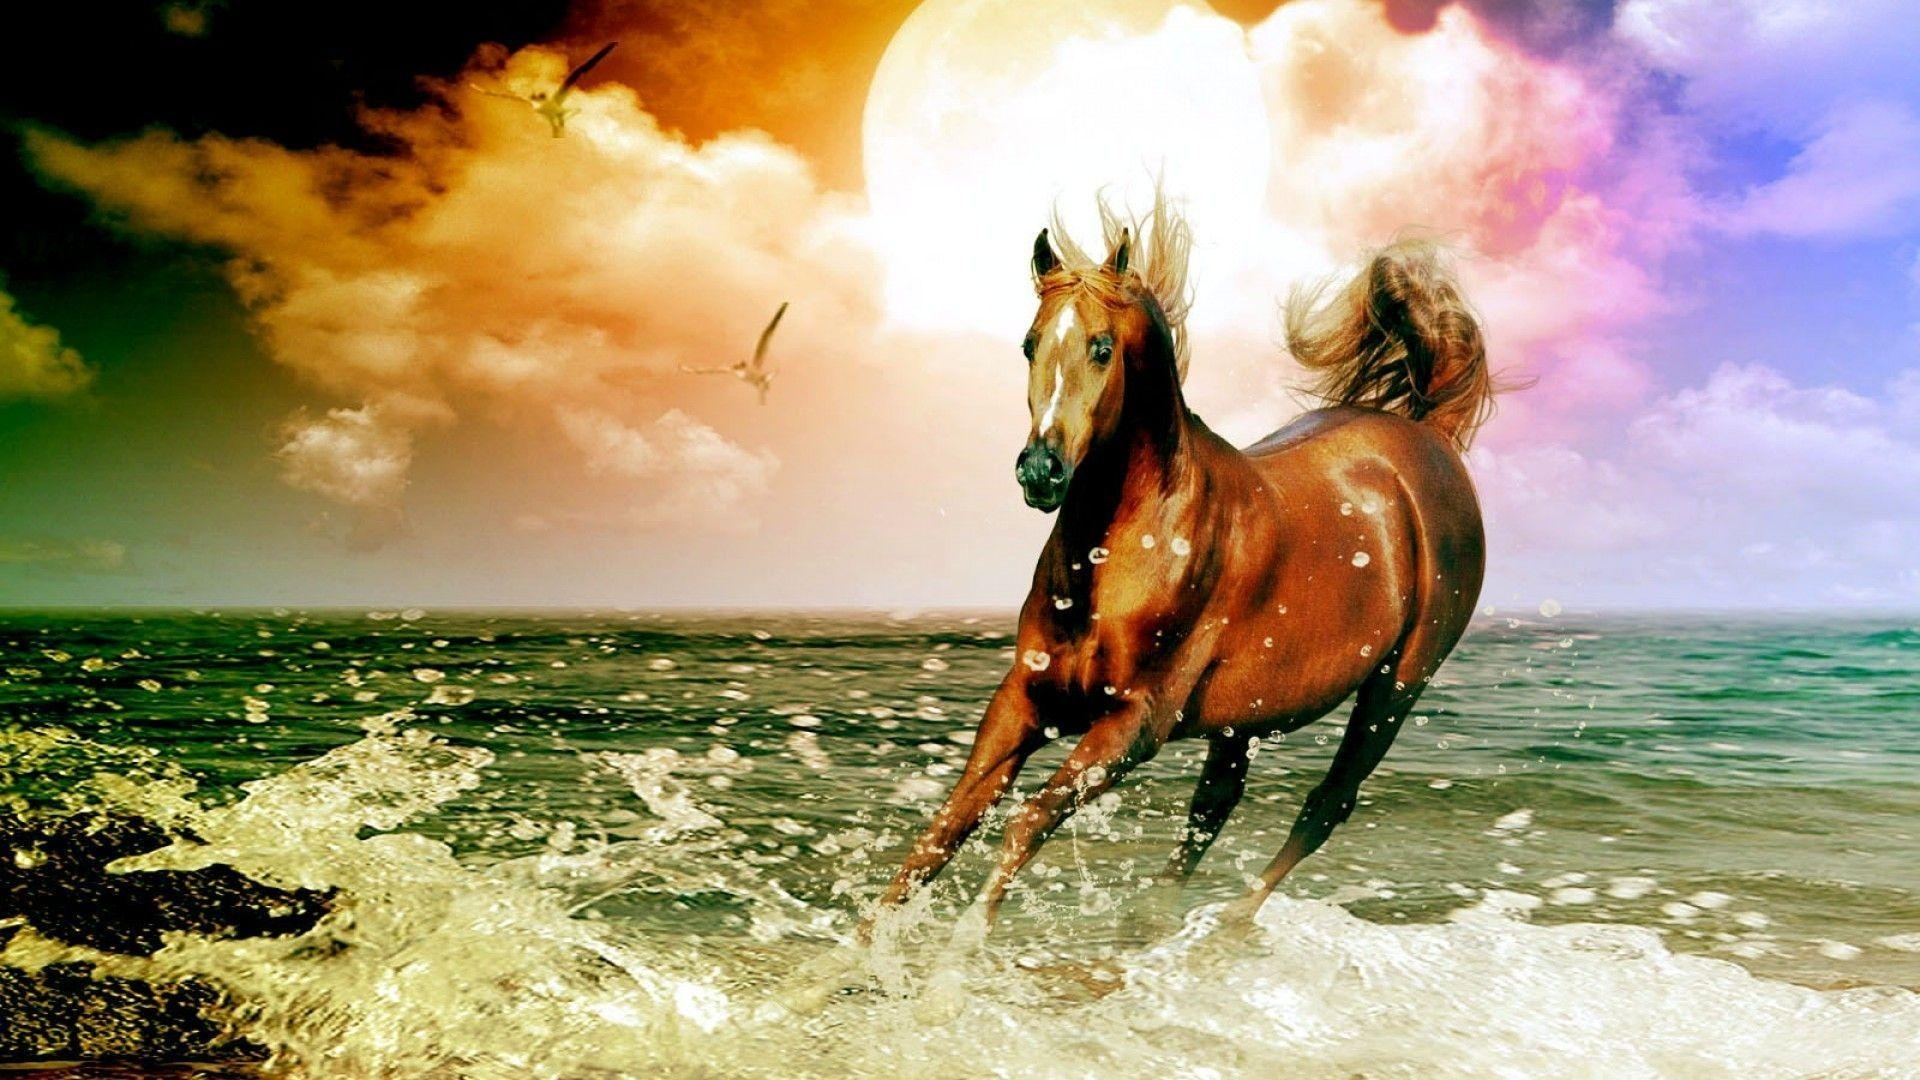 free horse wallpapers for computer - wallpaper cave